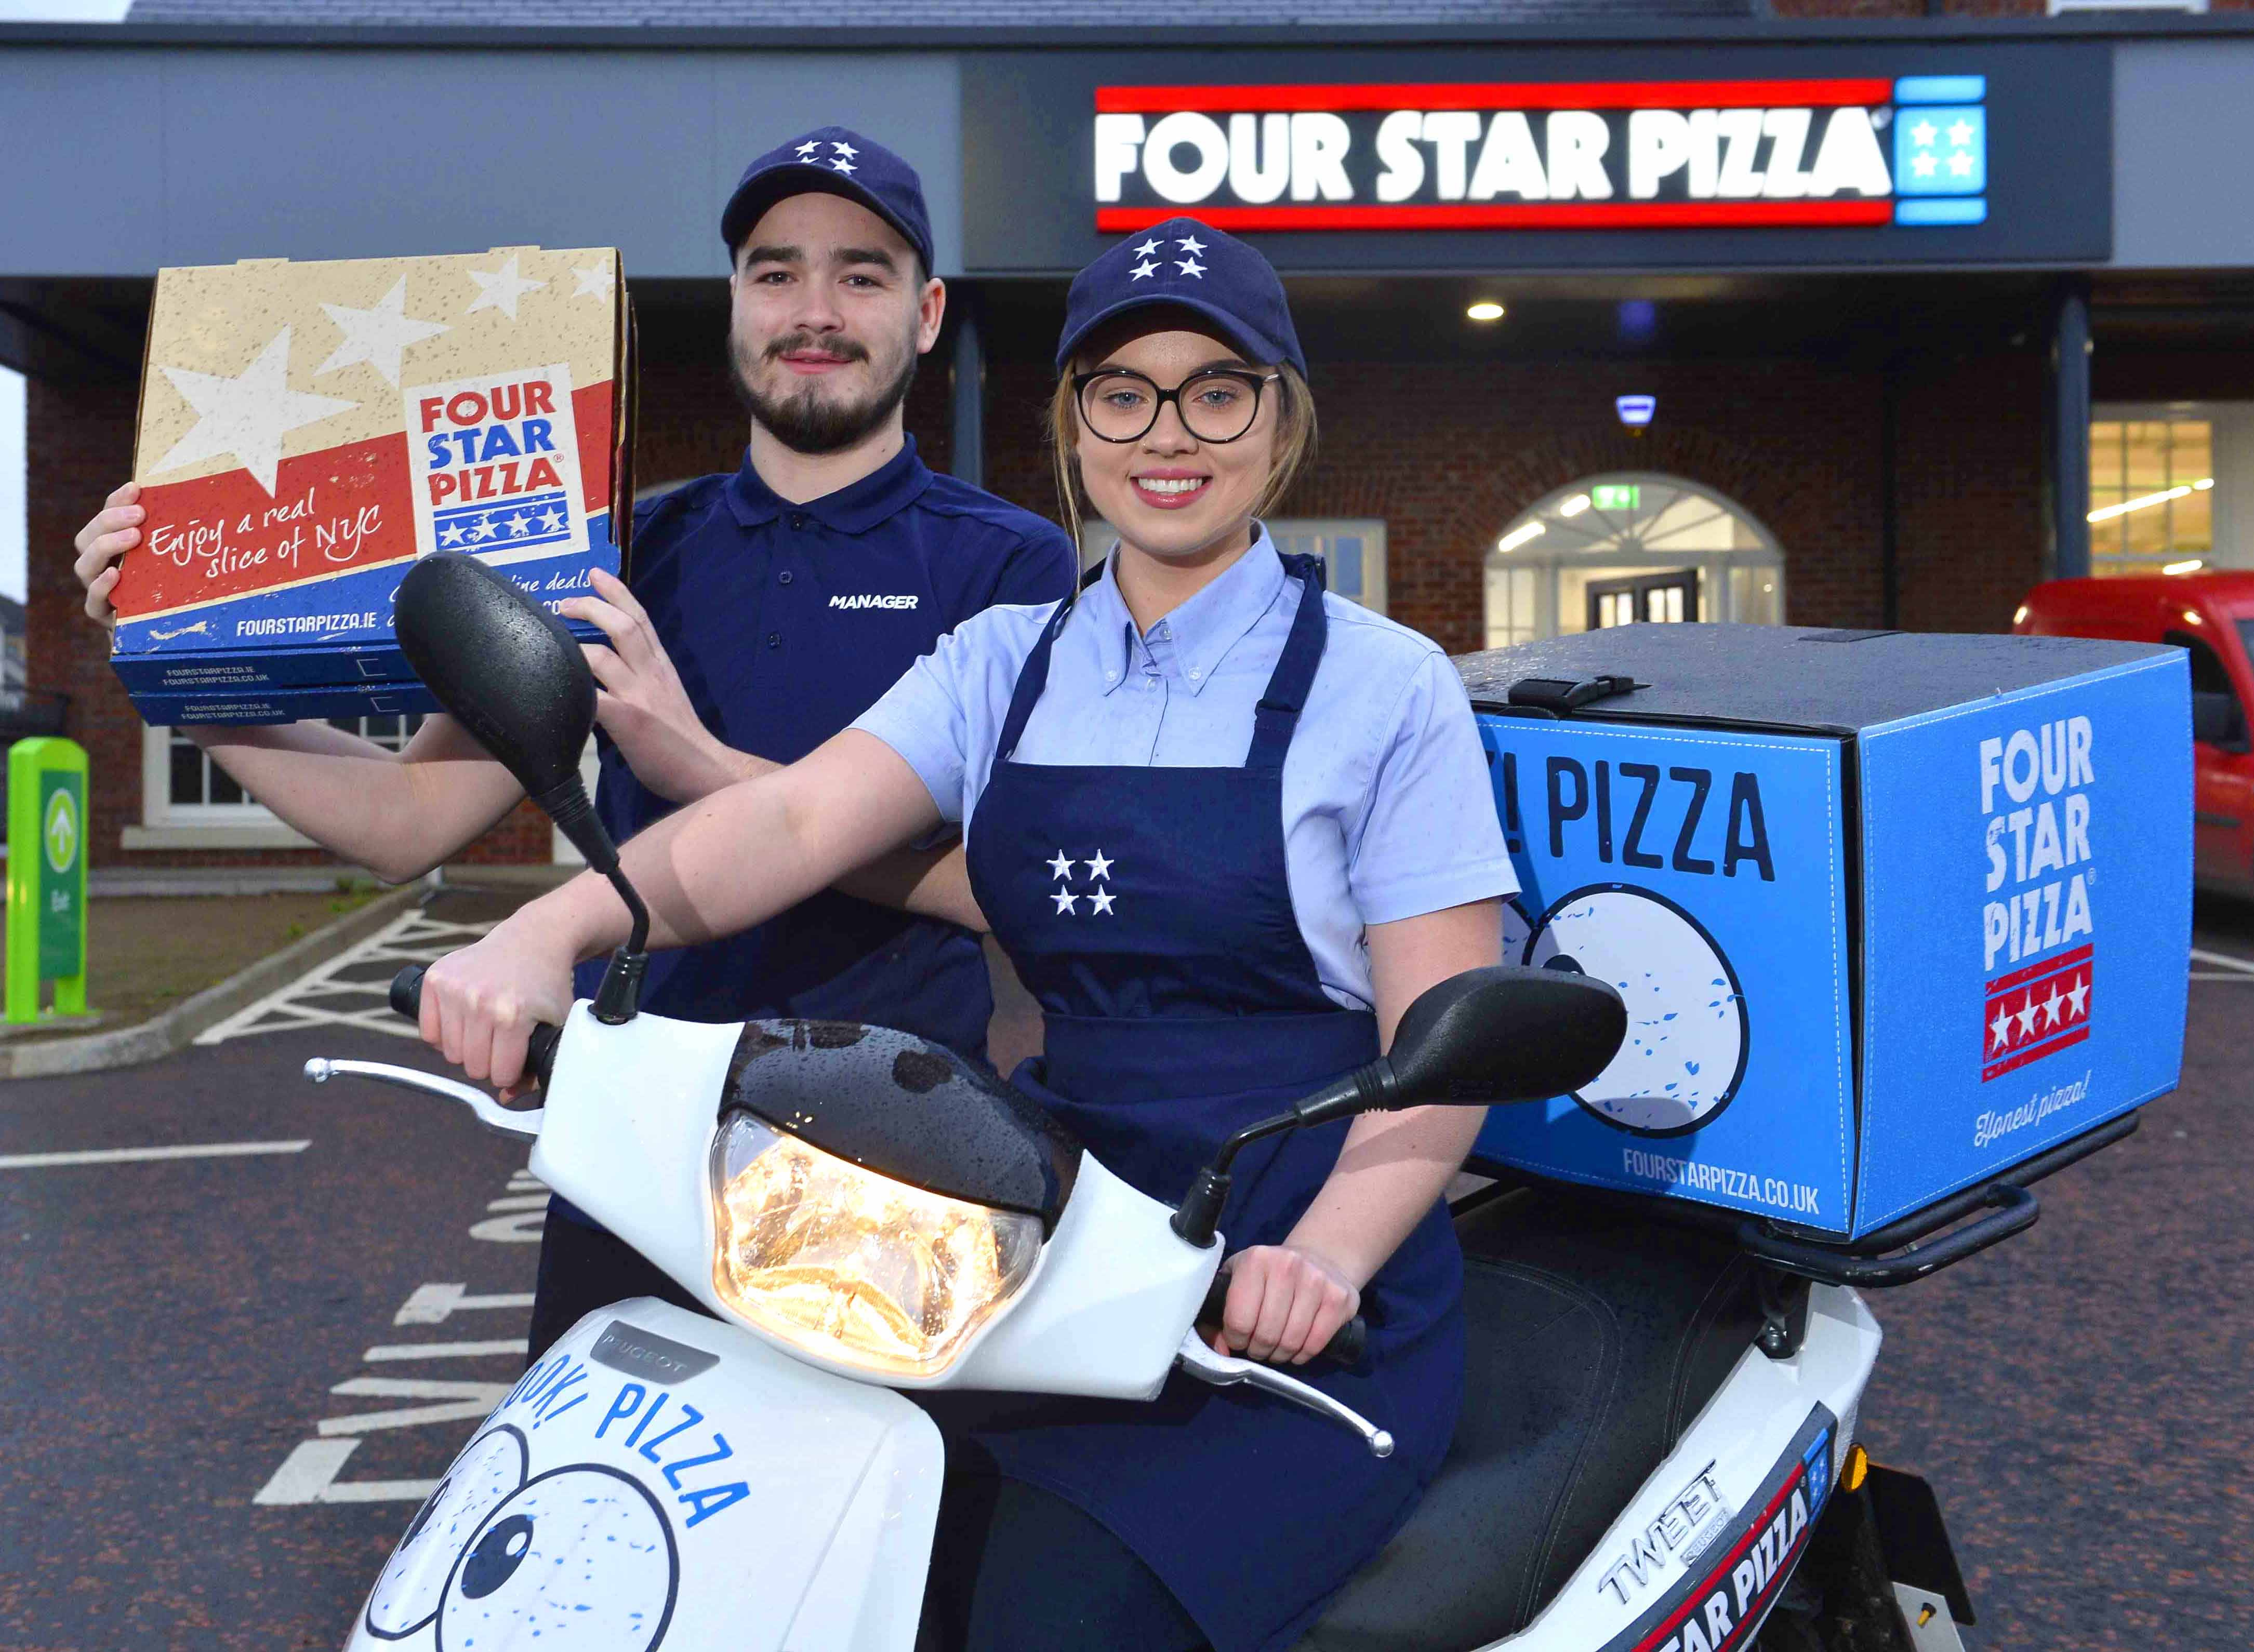 30 New Jobs As Four Star Pizza Comes To Lisburn Duffy